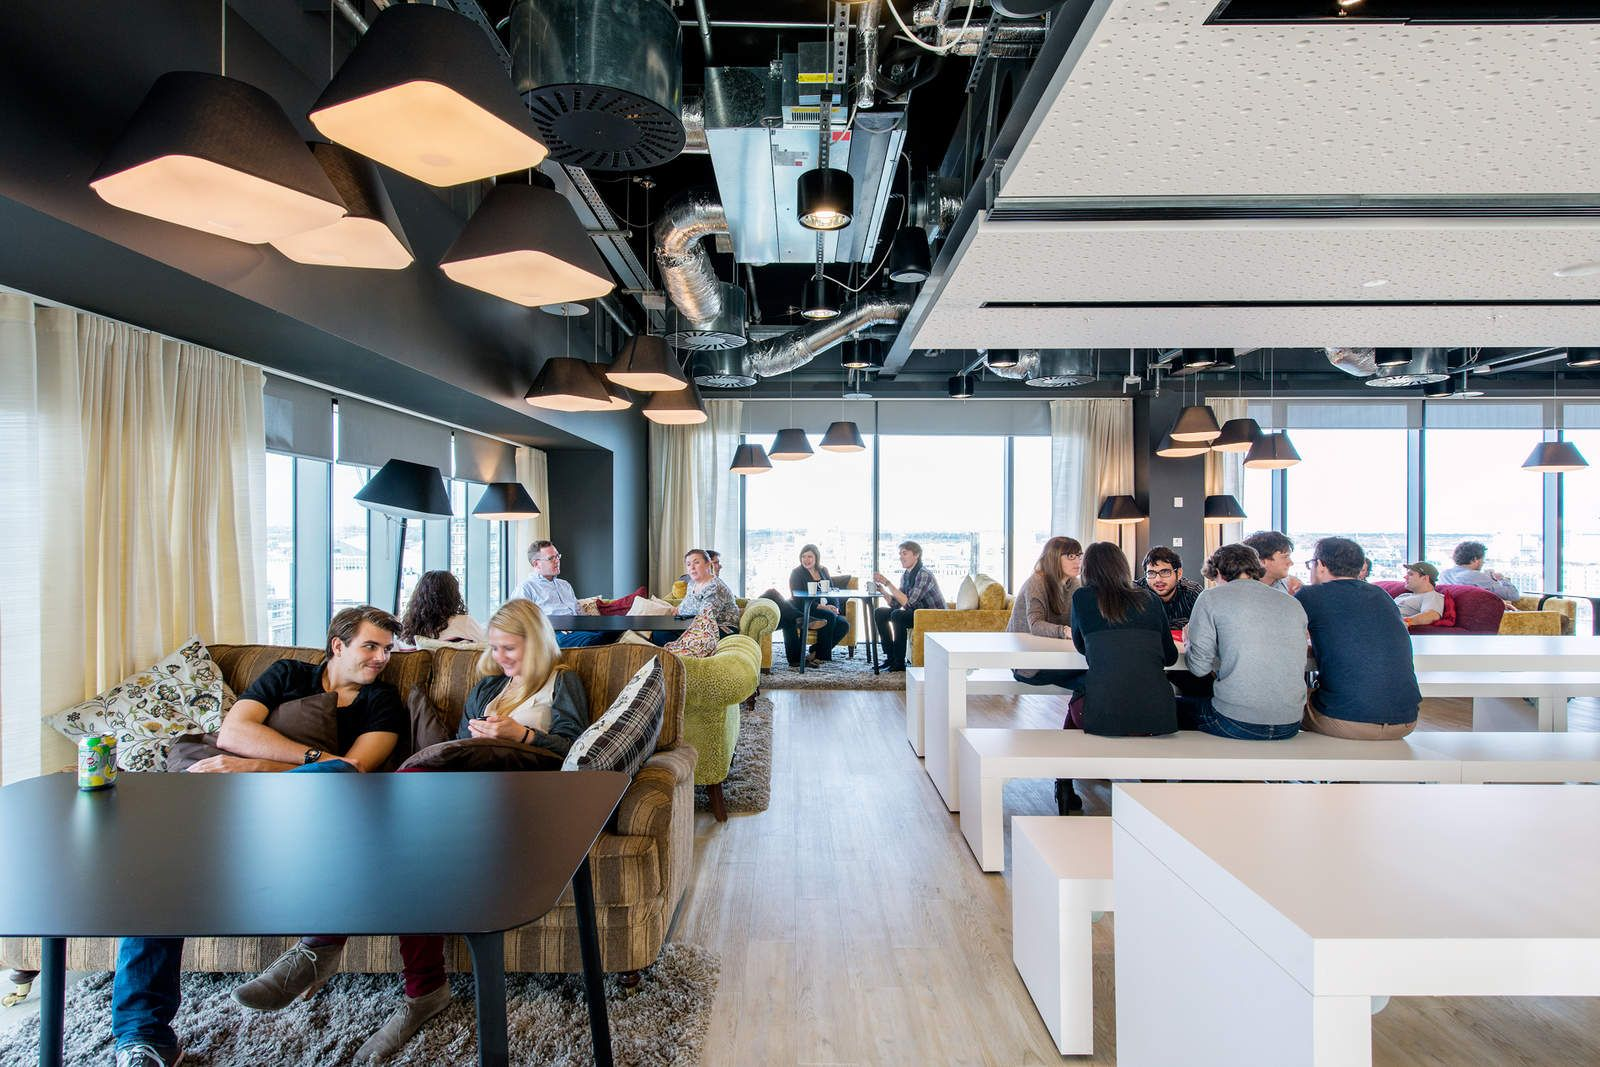 Google campus dublin google works home camenzind for Dublin interior design firm